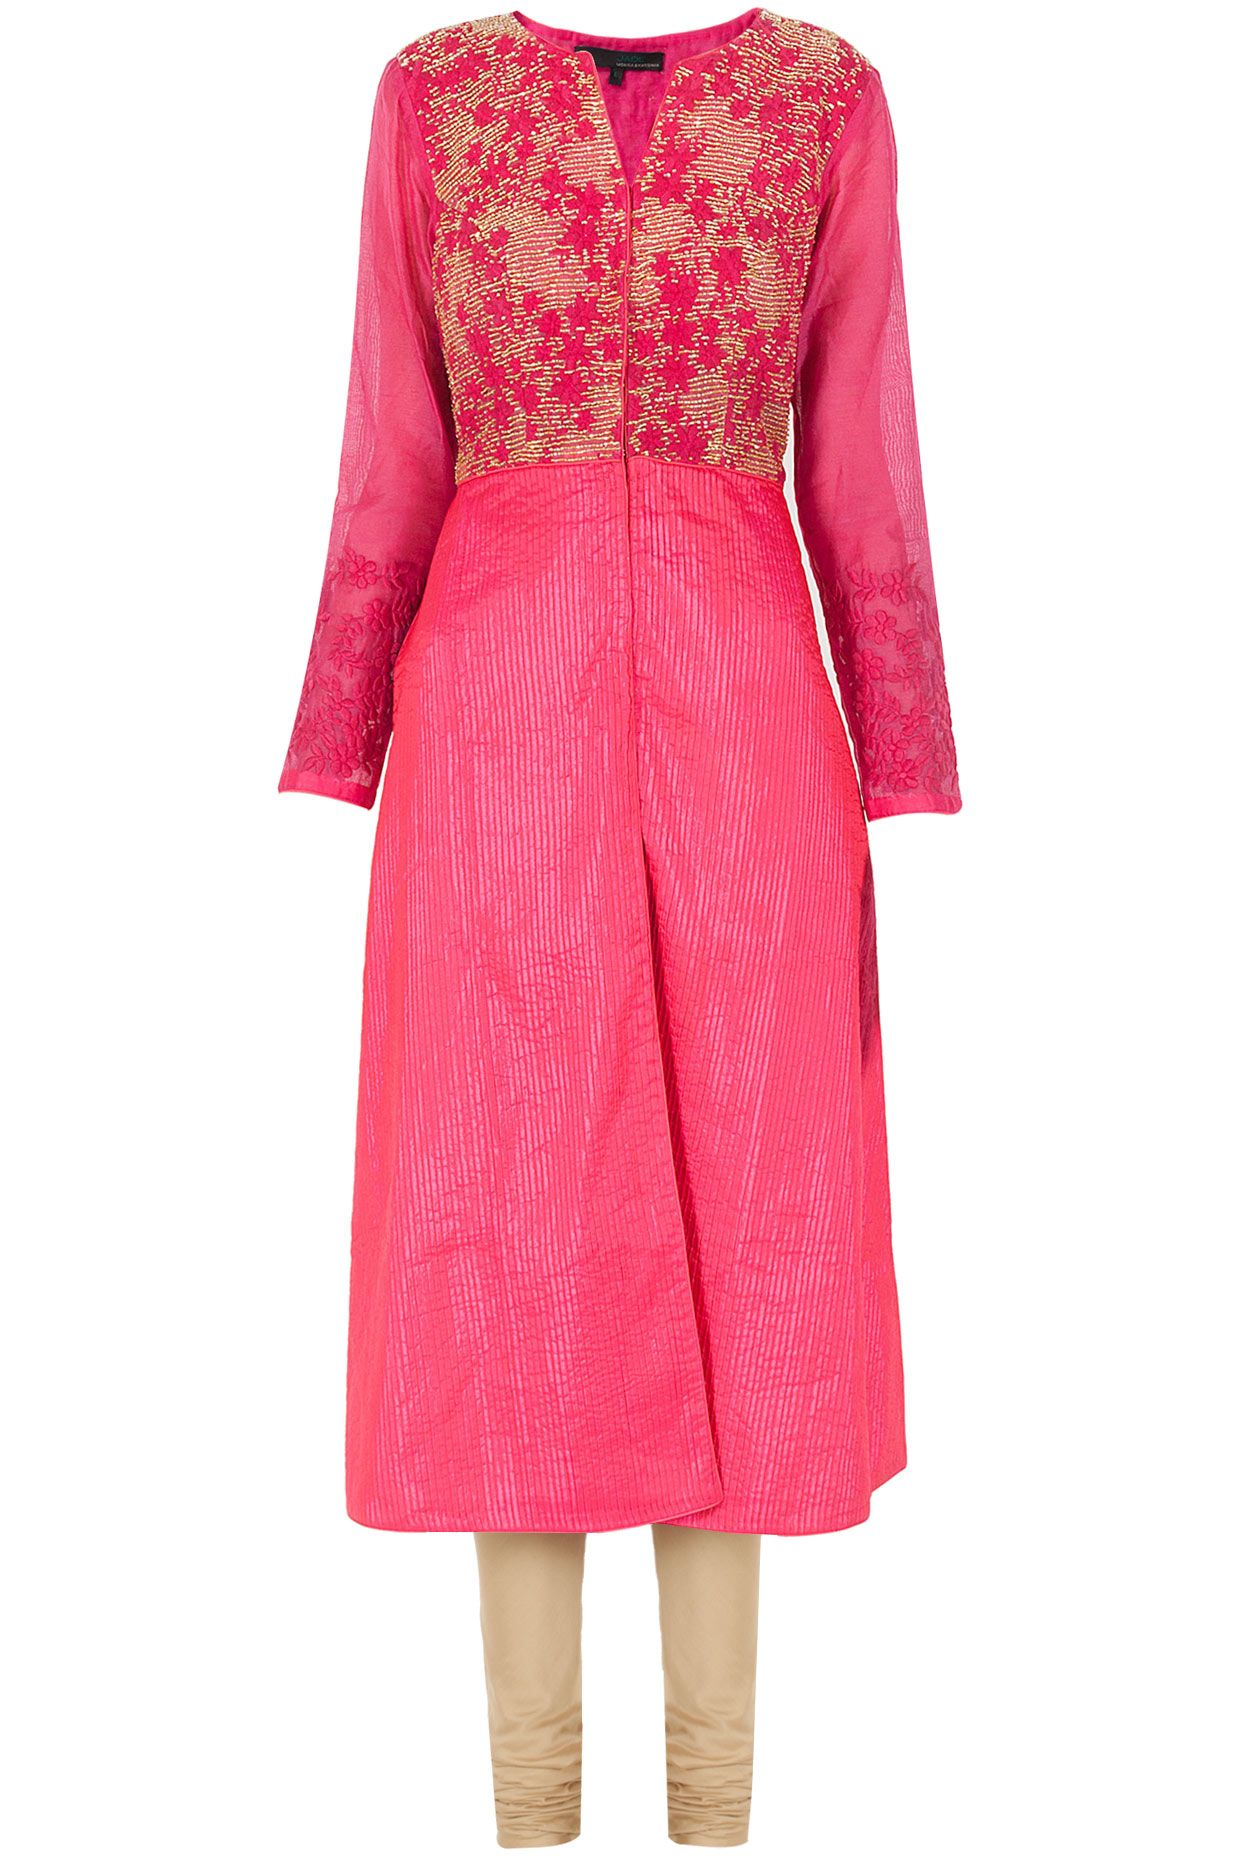 Pink pleated embroidered kurta set available only at Pernia's Pop-Up Shop.